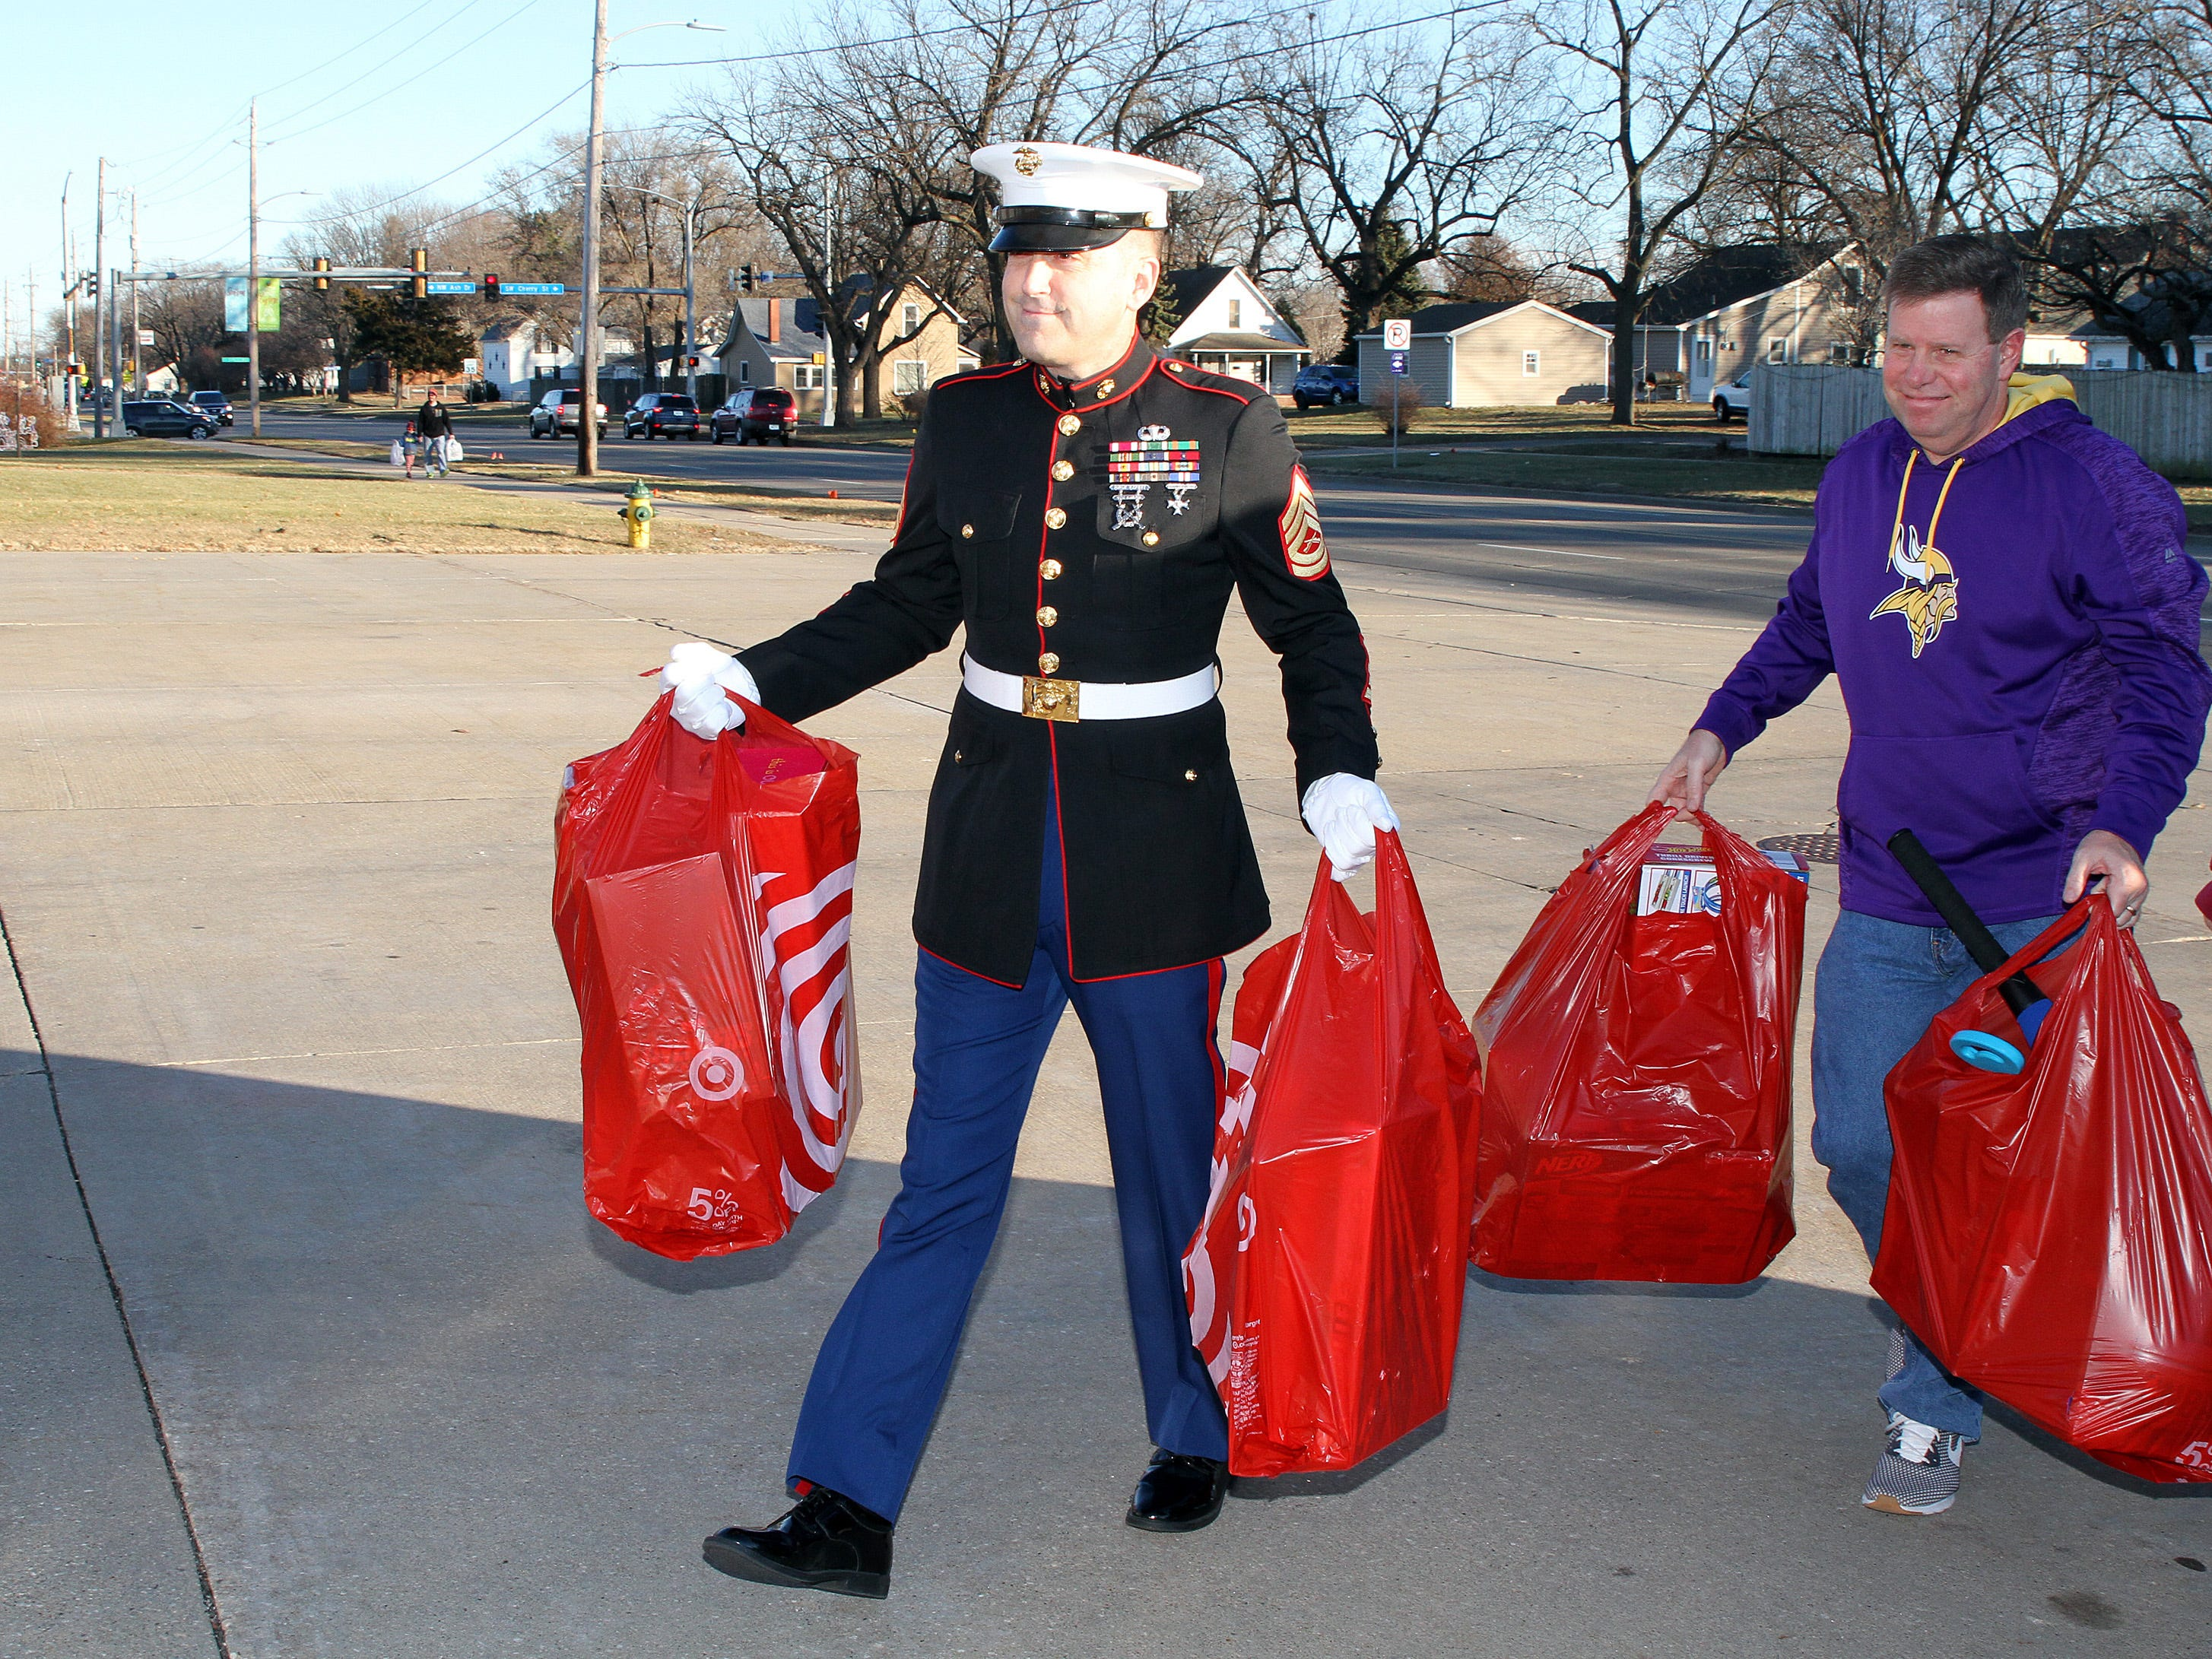 Retired Marine Gunnery Sgt. Mark Amann, current member of the Ankeny Fire Department, carries gifts as they are dropped off at Ankeny's fill the truck day during the U.S. Marine Corps Toys for Tots campaign at the Ankeny Fire Station Headquarters on Sunday, Dec. 16, 2018.